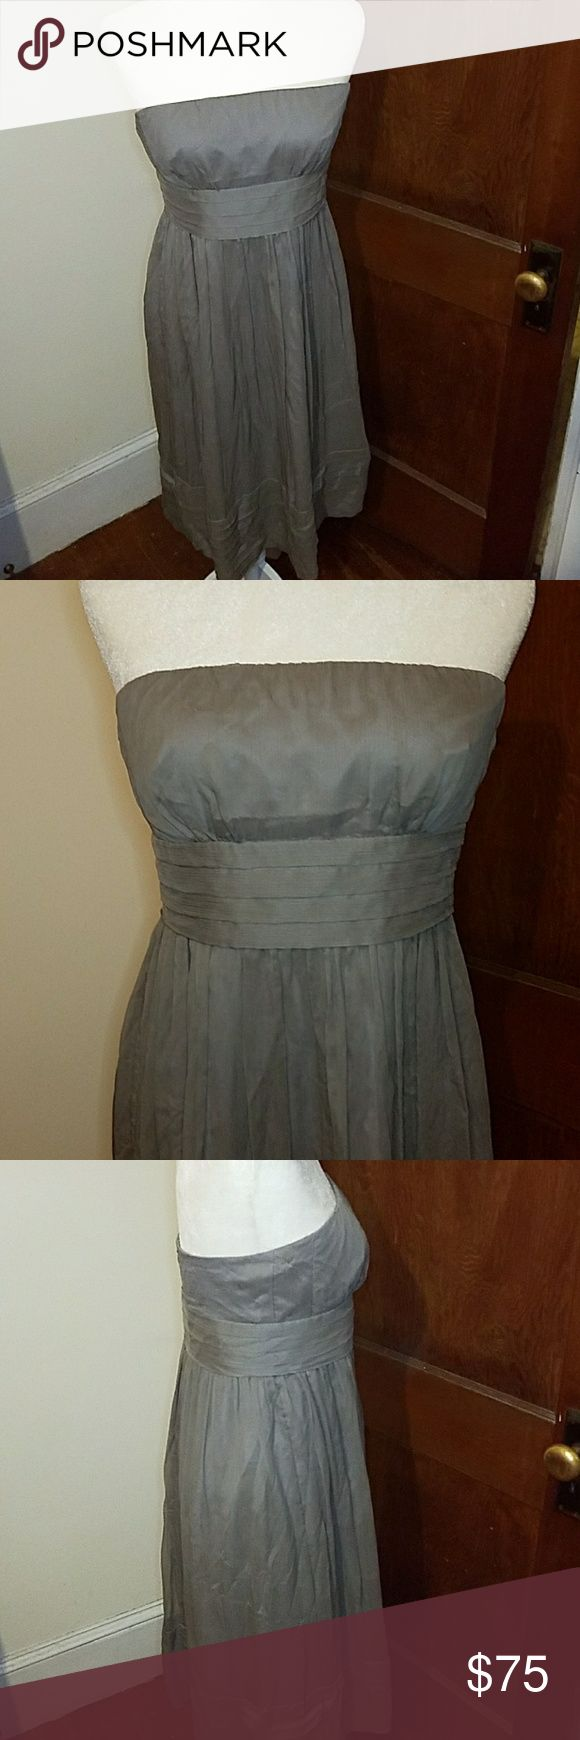 "J CREW gorgeous strapless formal tea lenghth dress In basically new condition, freshly dry cleaned. Would be perfect for a wedding, formal dance, or any other event you need to look beautiful and classy for. Bust is 15"" across and 35"" long. J. Crew Dresses"